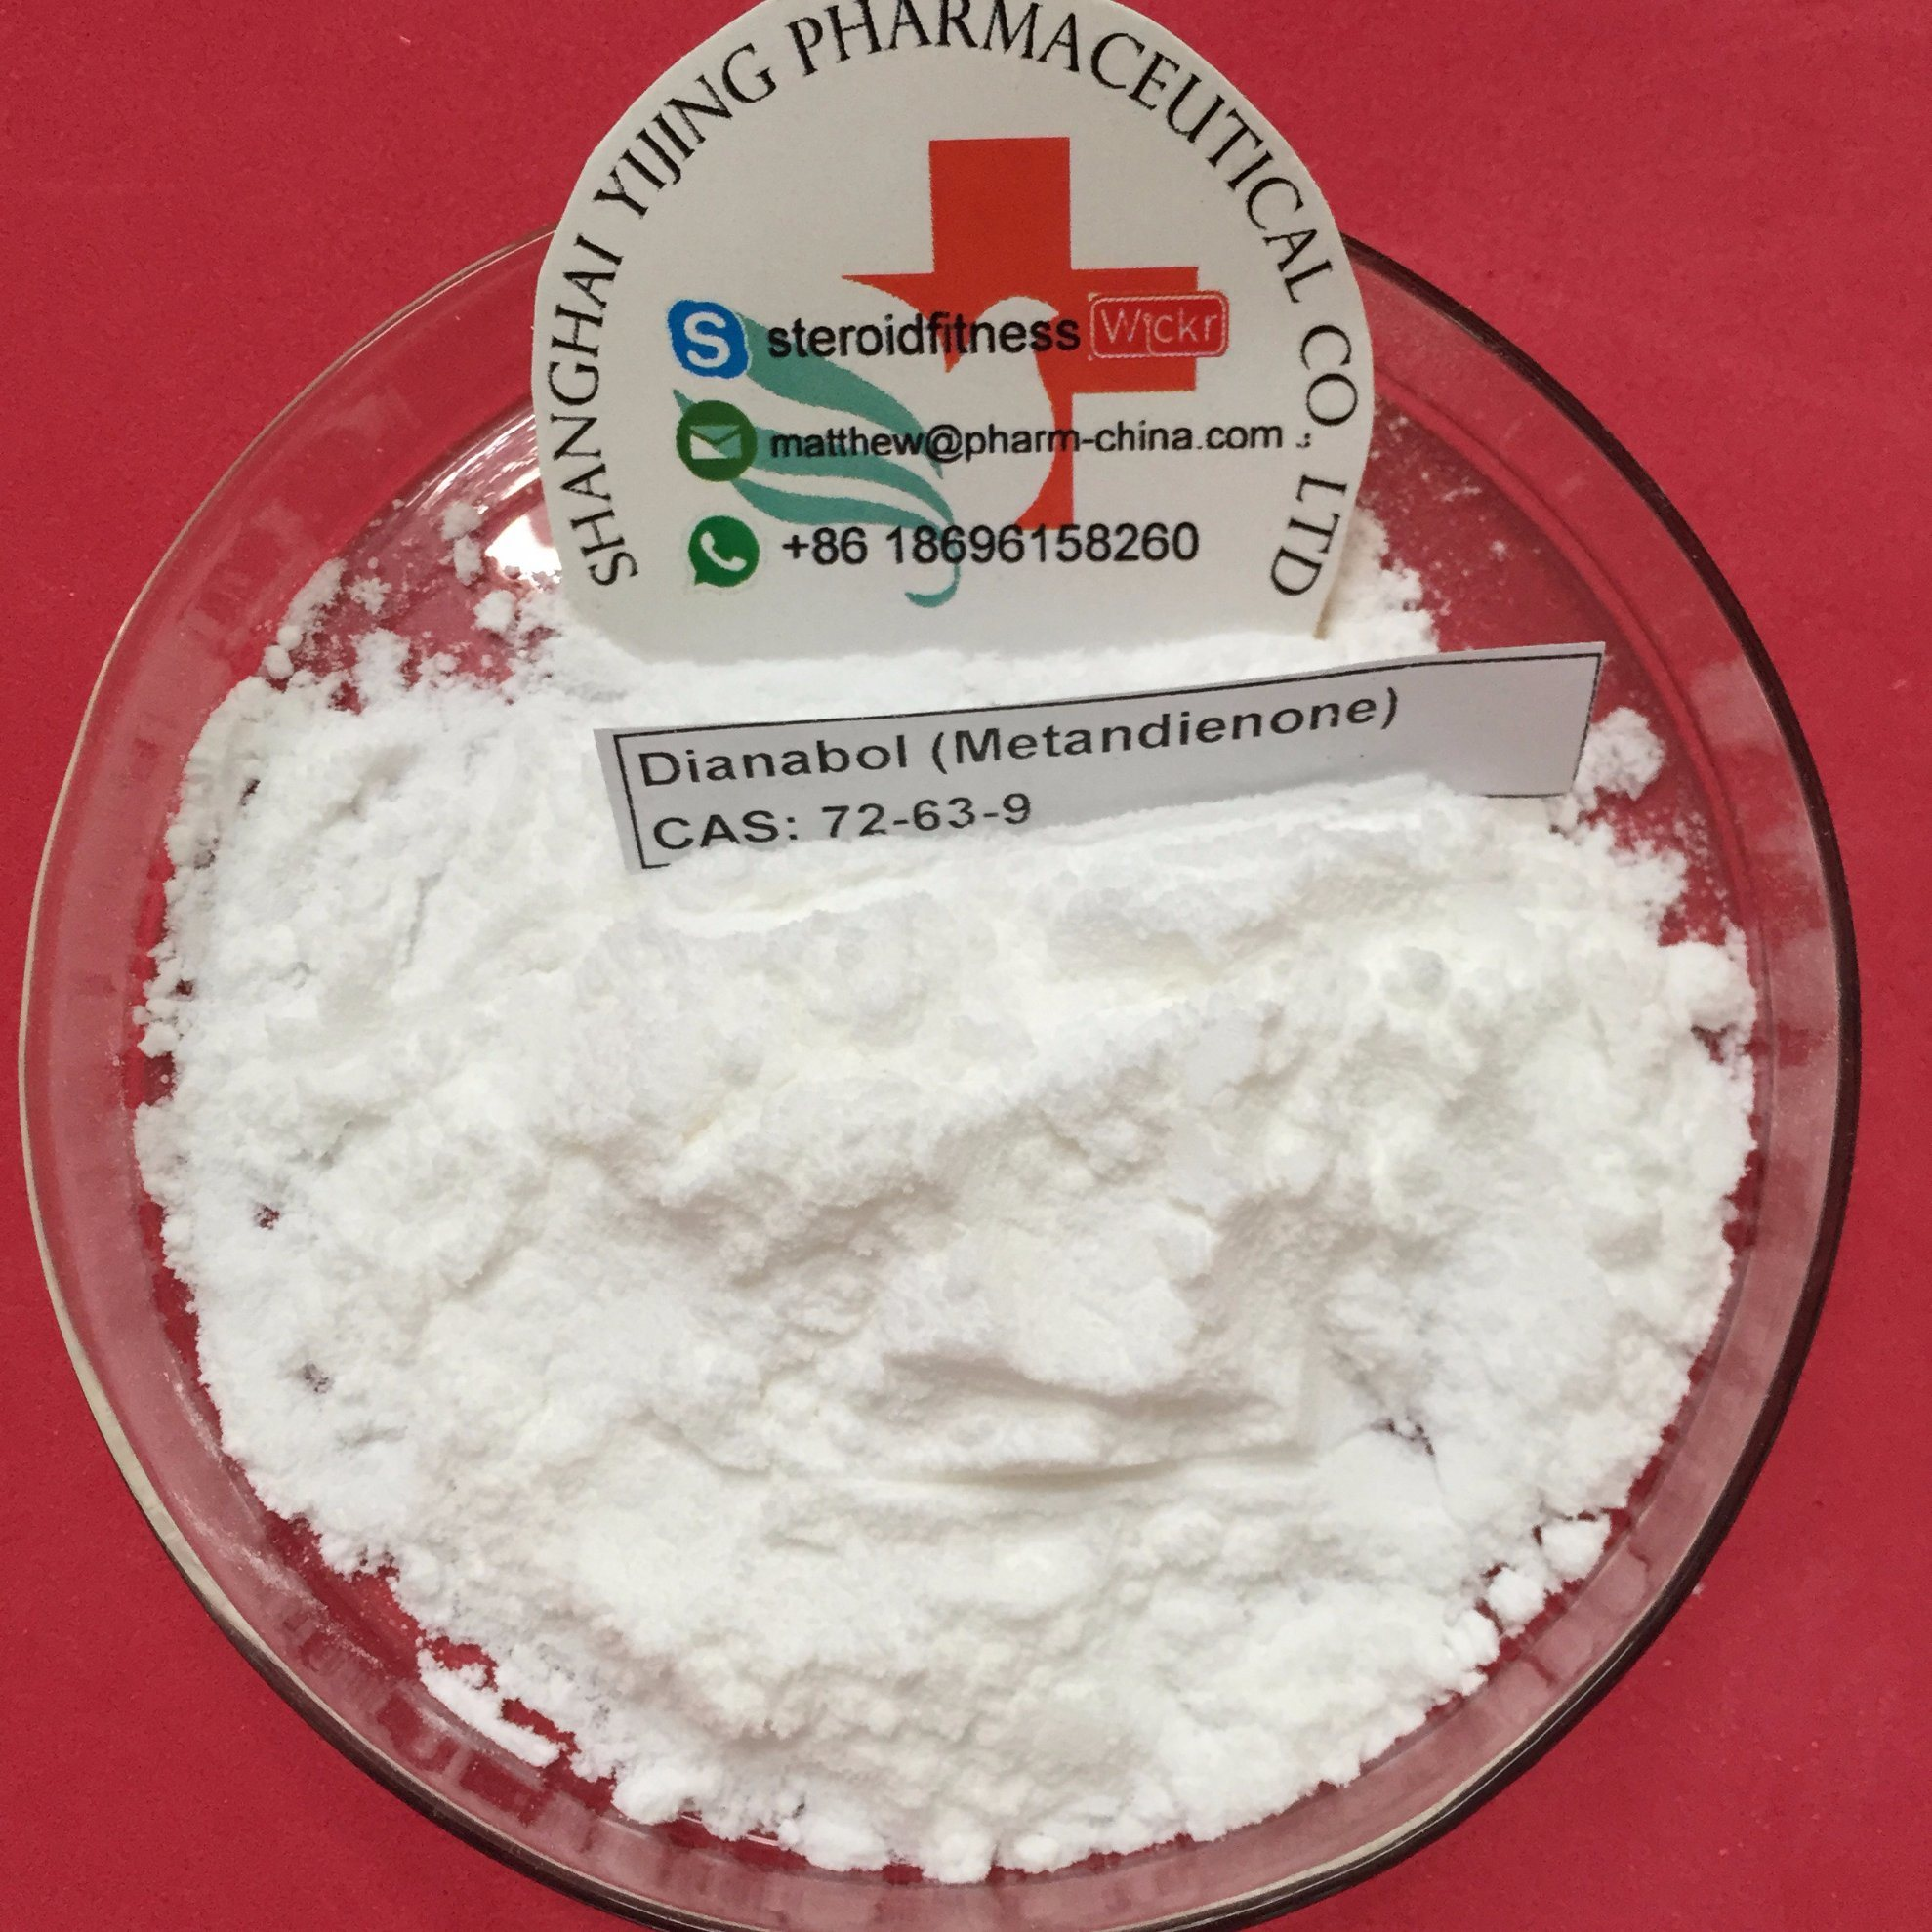 High Purity Metandienone / Dianabol (Dbol) Steroids Powder for Muscle Building